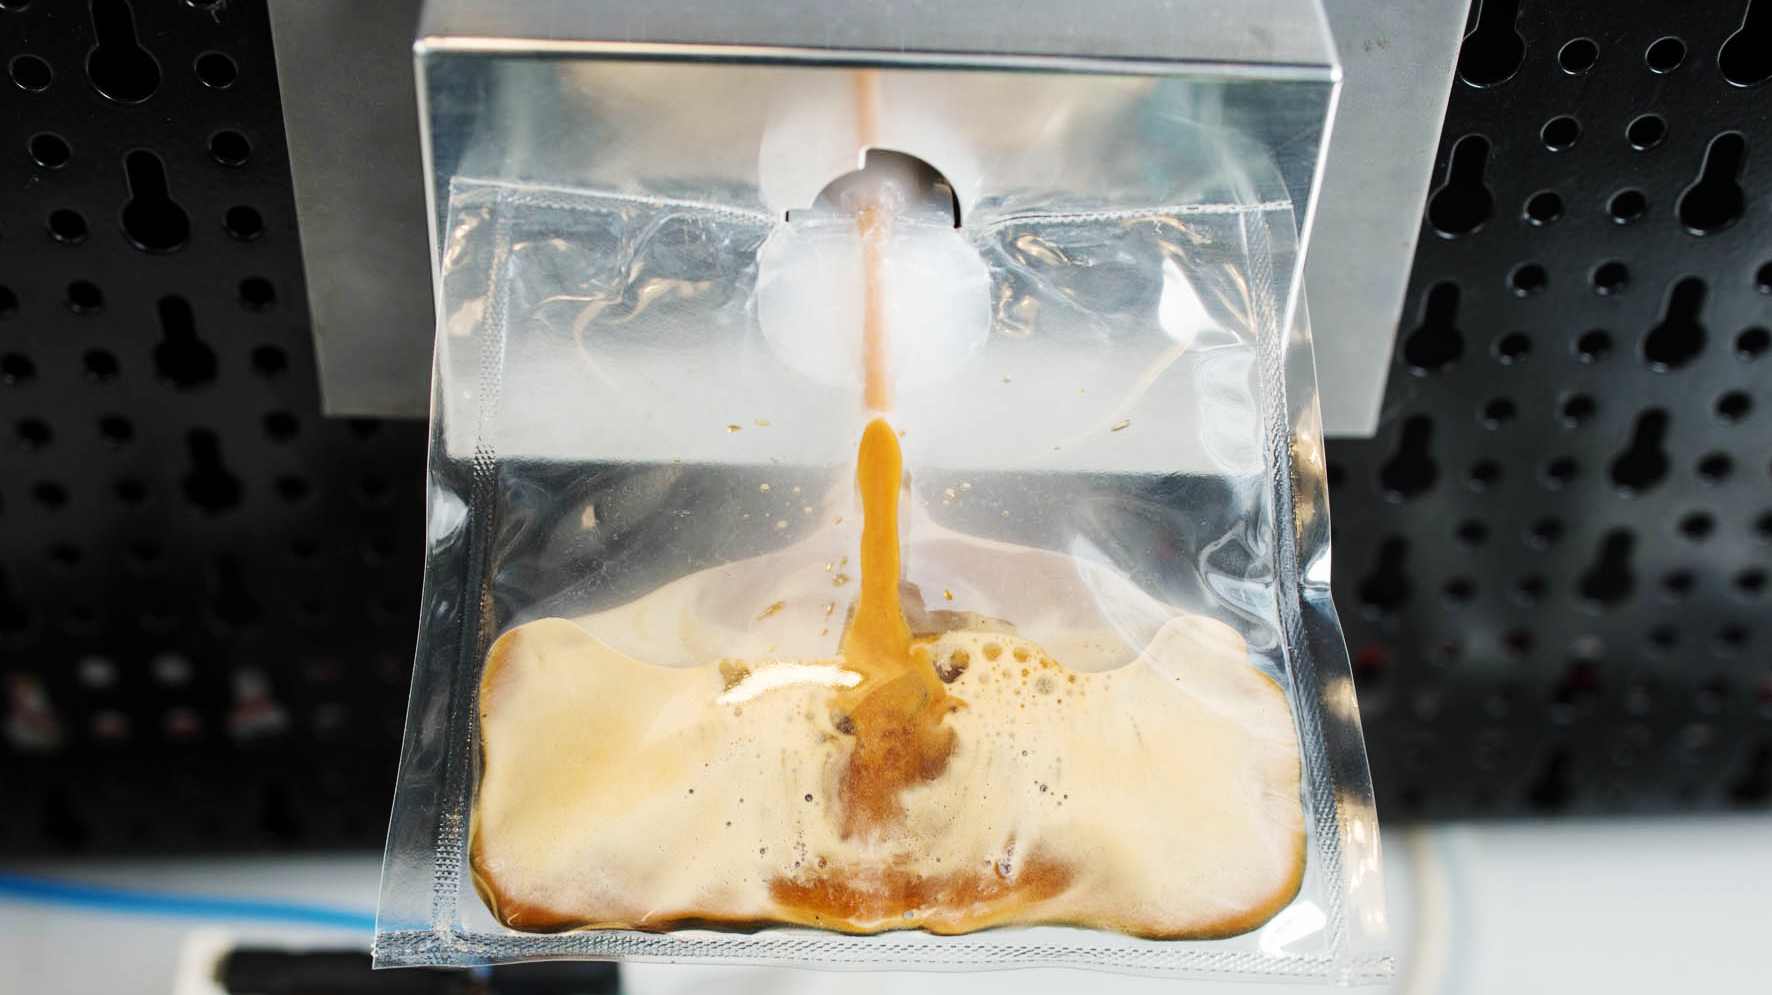 Leave it to the Italians to design a capsule-based espresso system for astronauts who miss their morning cup. Photo: Andrea Guermani/Courtesy of Lavazza